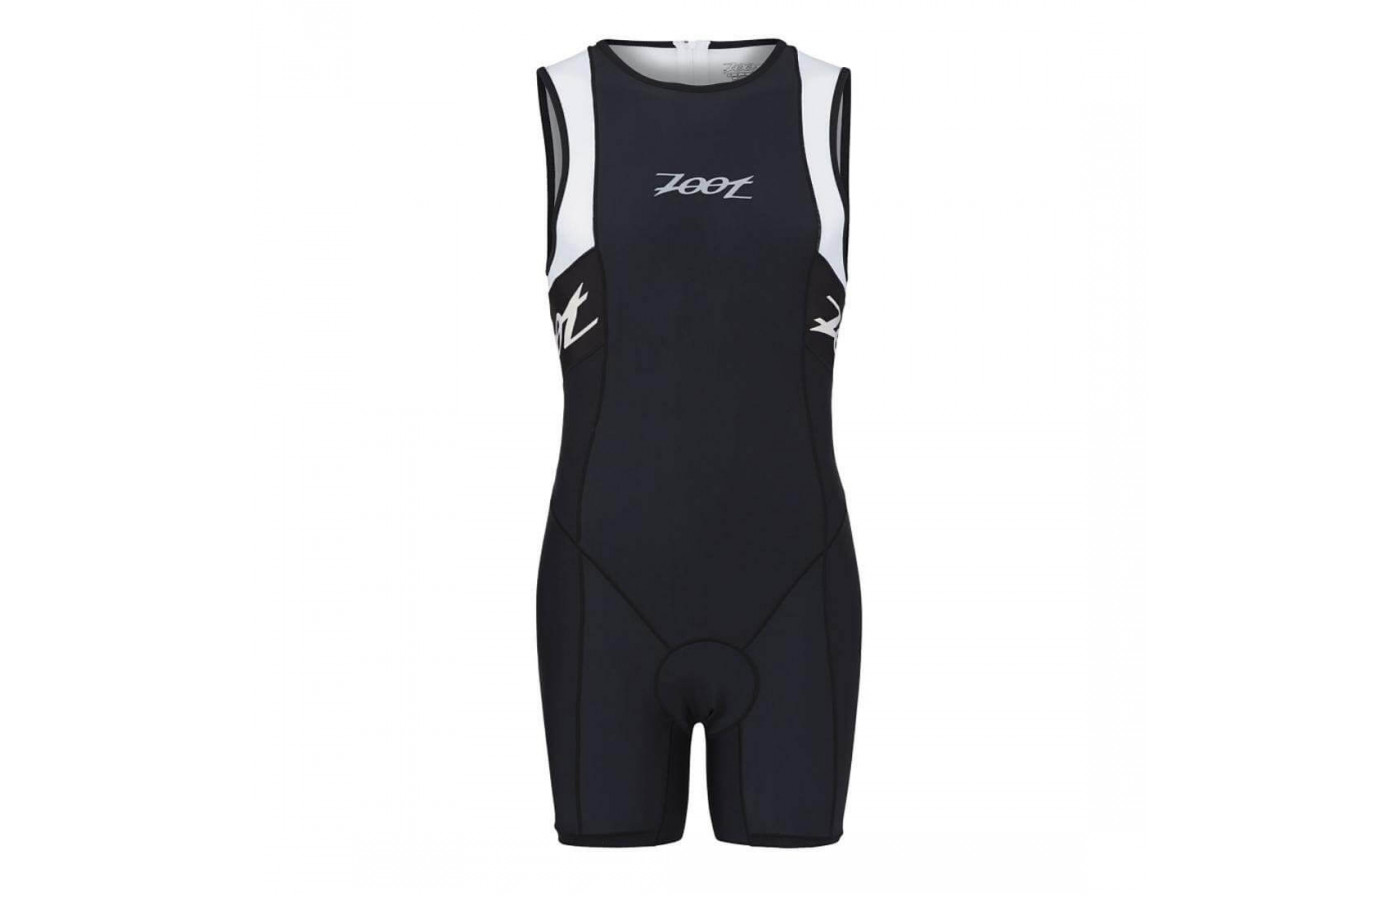 The Zoot Performance Tri Racesuit is composed of Nylon and Spandex